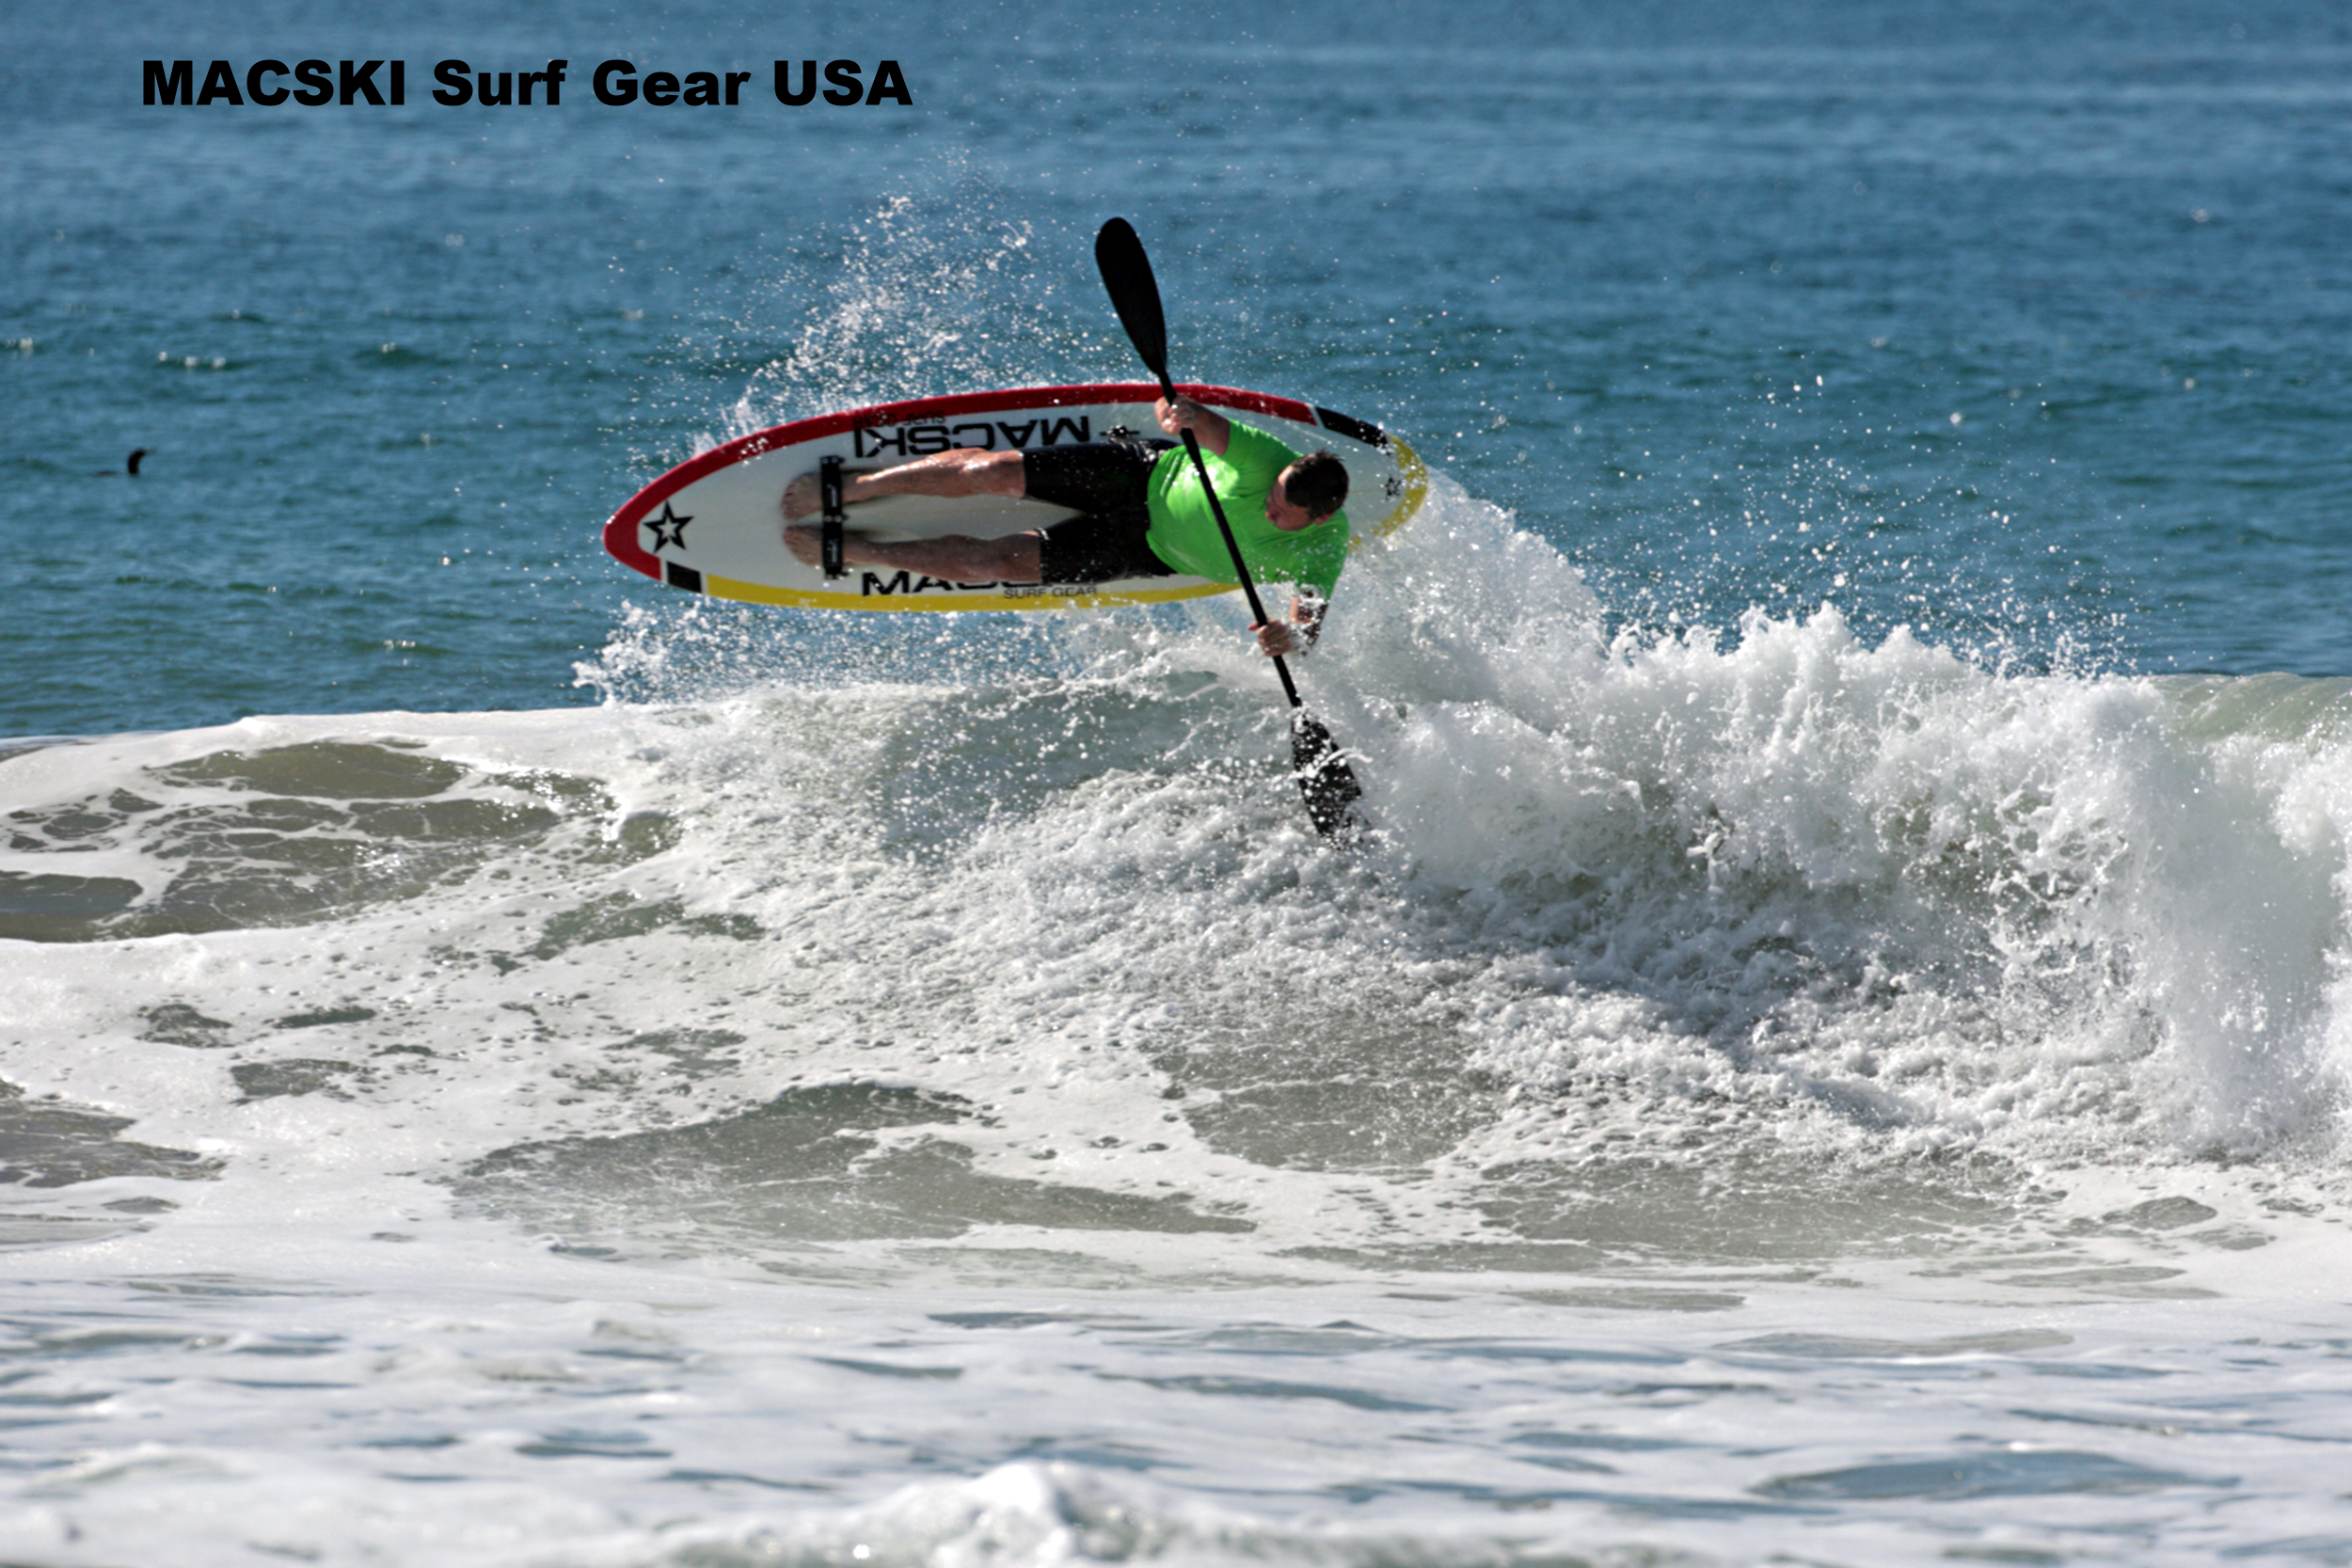 MACSKI Surf Gear USA- Showing Ian Macleod, Owner - San Luis Obispo, CA, USA - click on the picture to go to Macski Surf Gear website - Photo Copyright Dominick Lemarie Photography